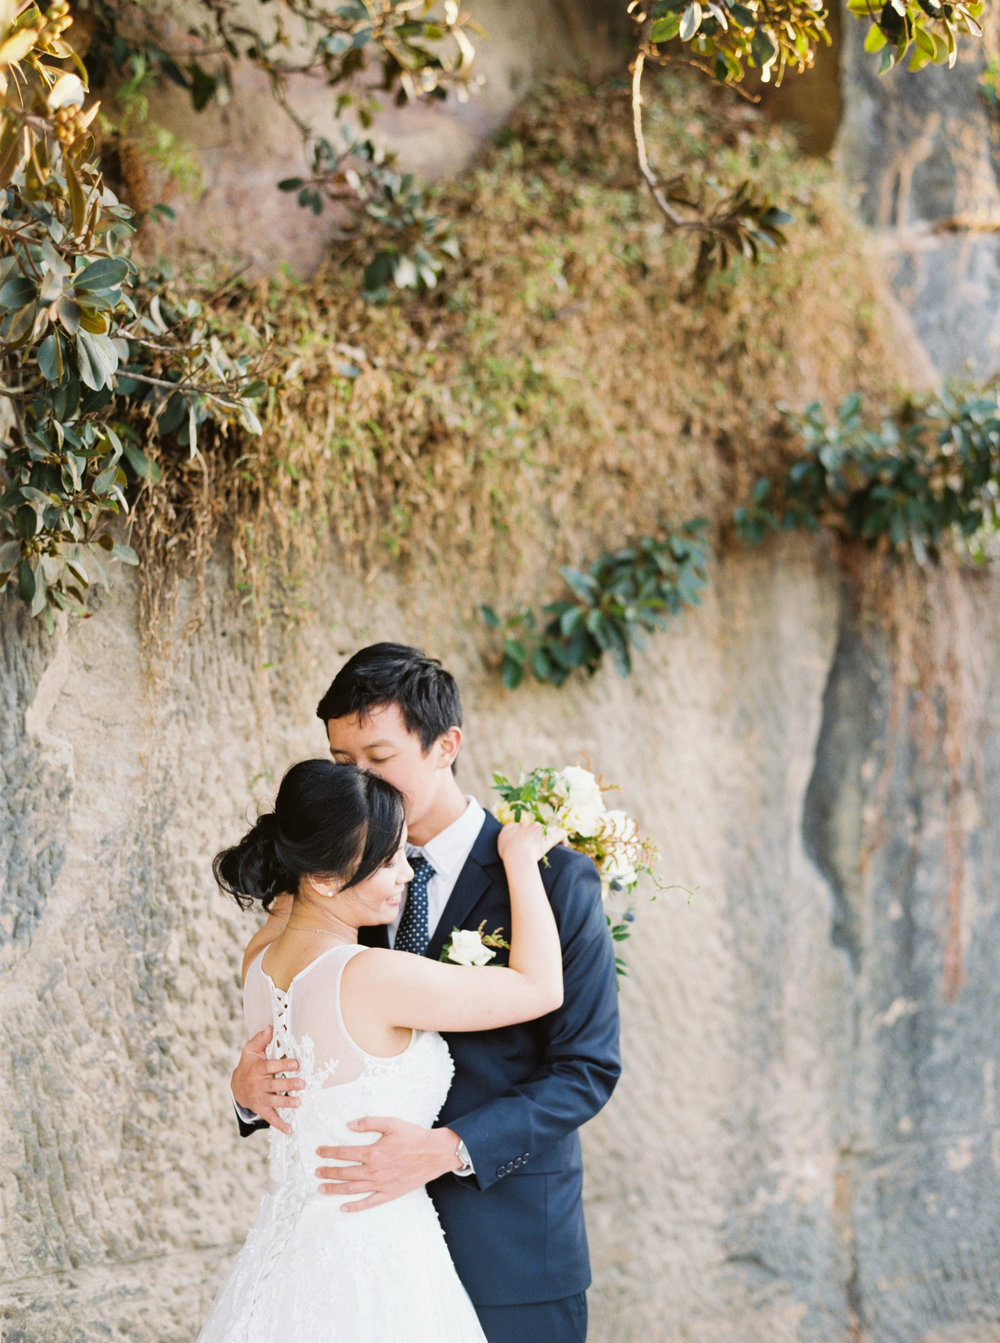 00009- Fine Art Film Australia Destination Sydney Wedding Photographer Sheri McMahon.jpg